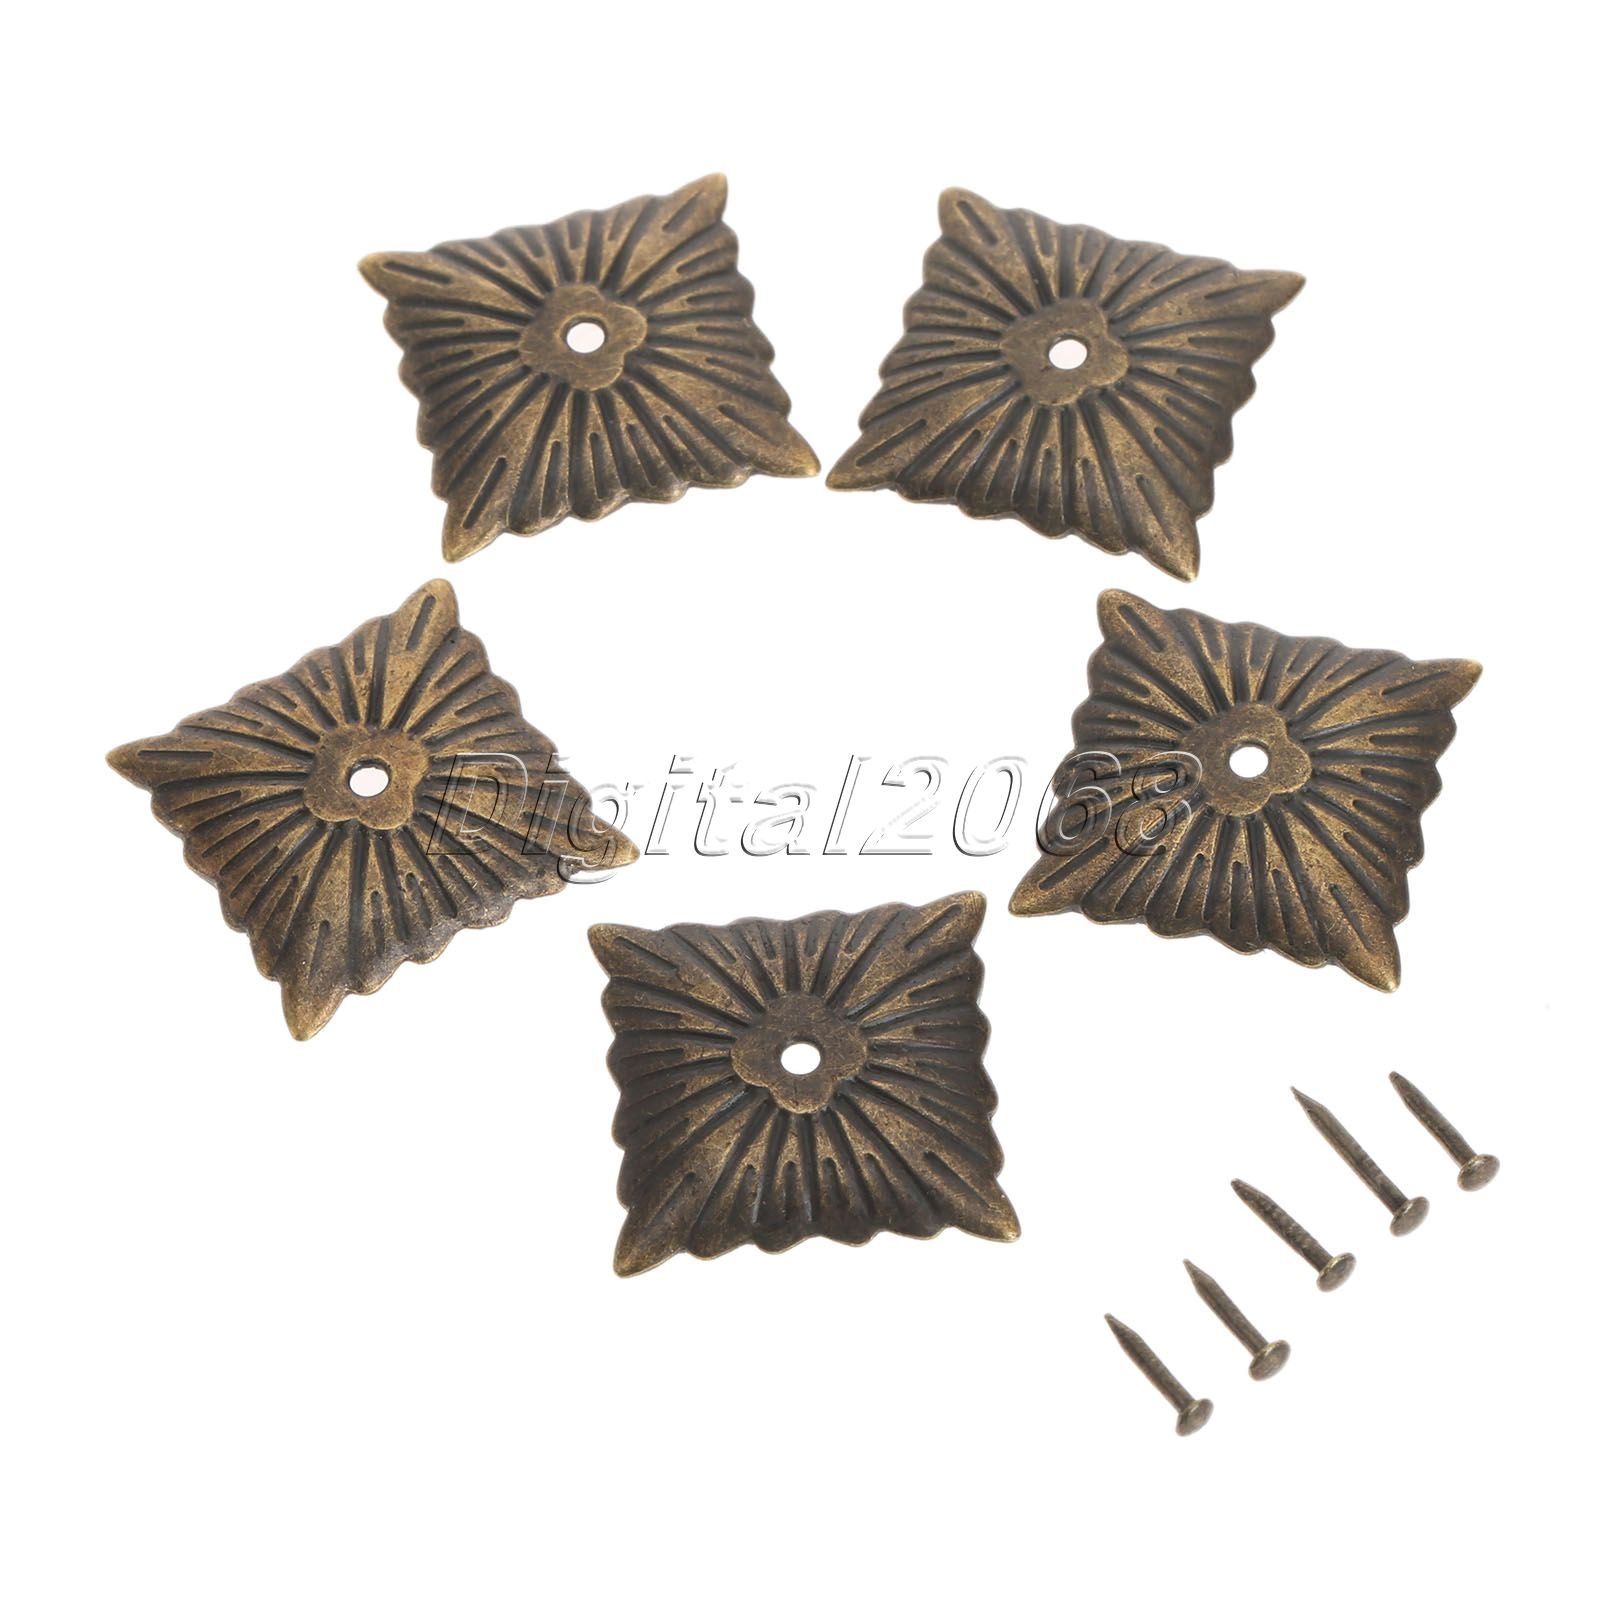 ⑤100Pcs Iron Bronze Antique Square Decorative Upholstery Nails Tack